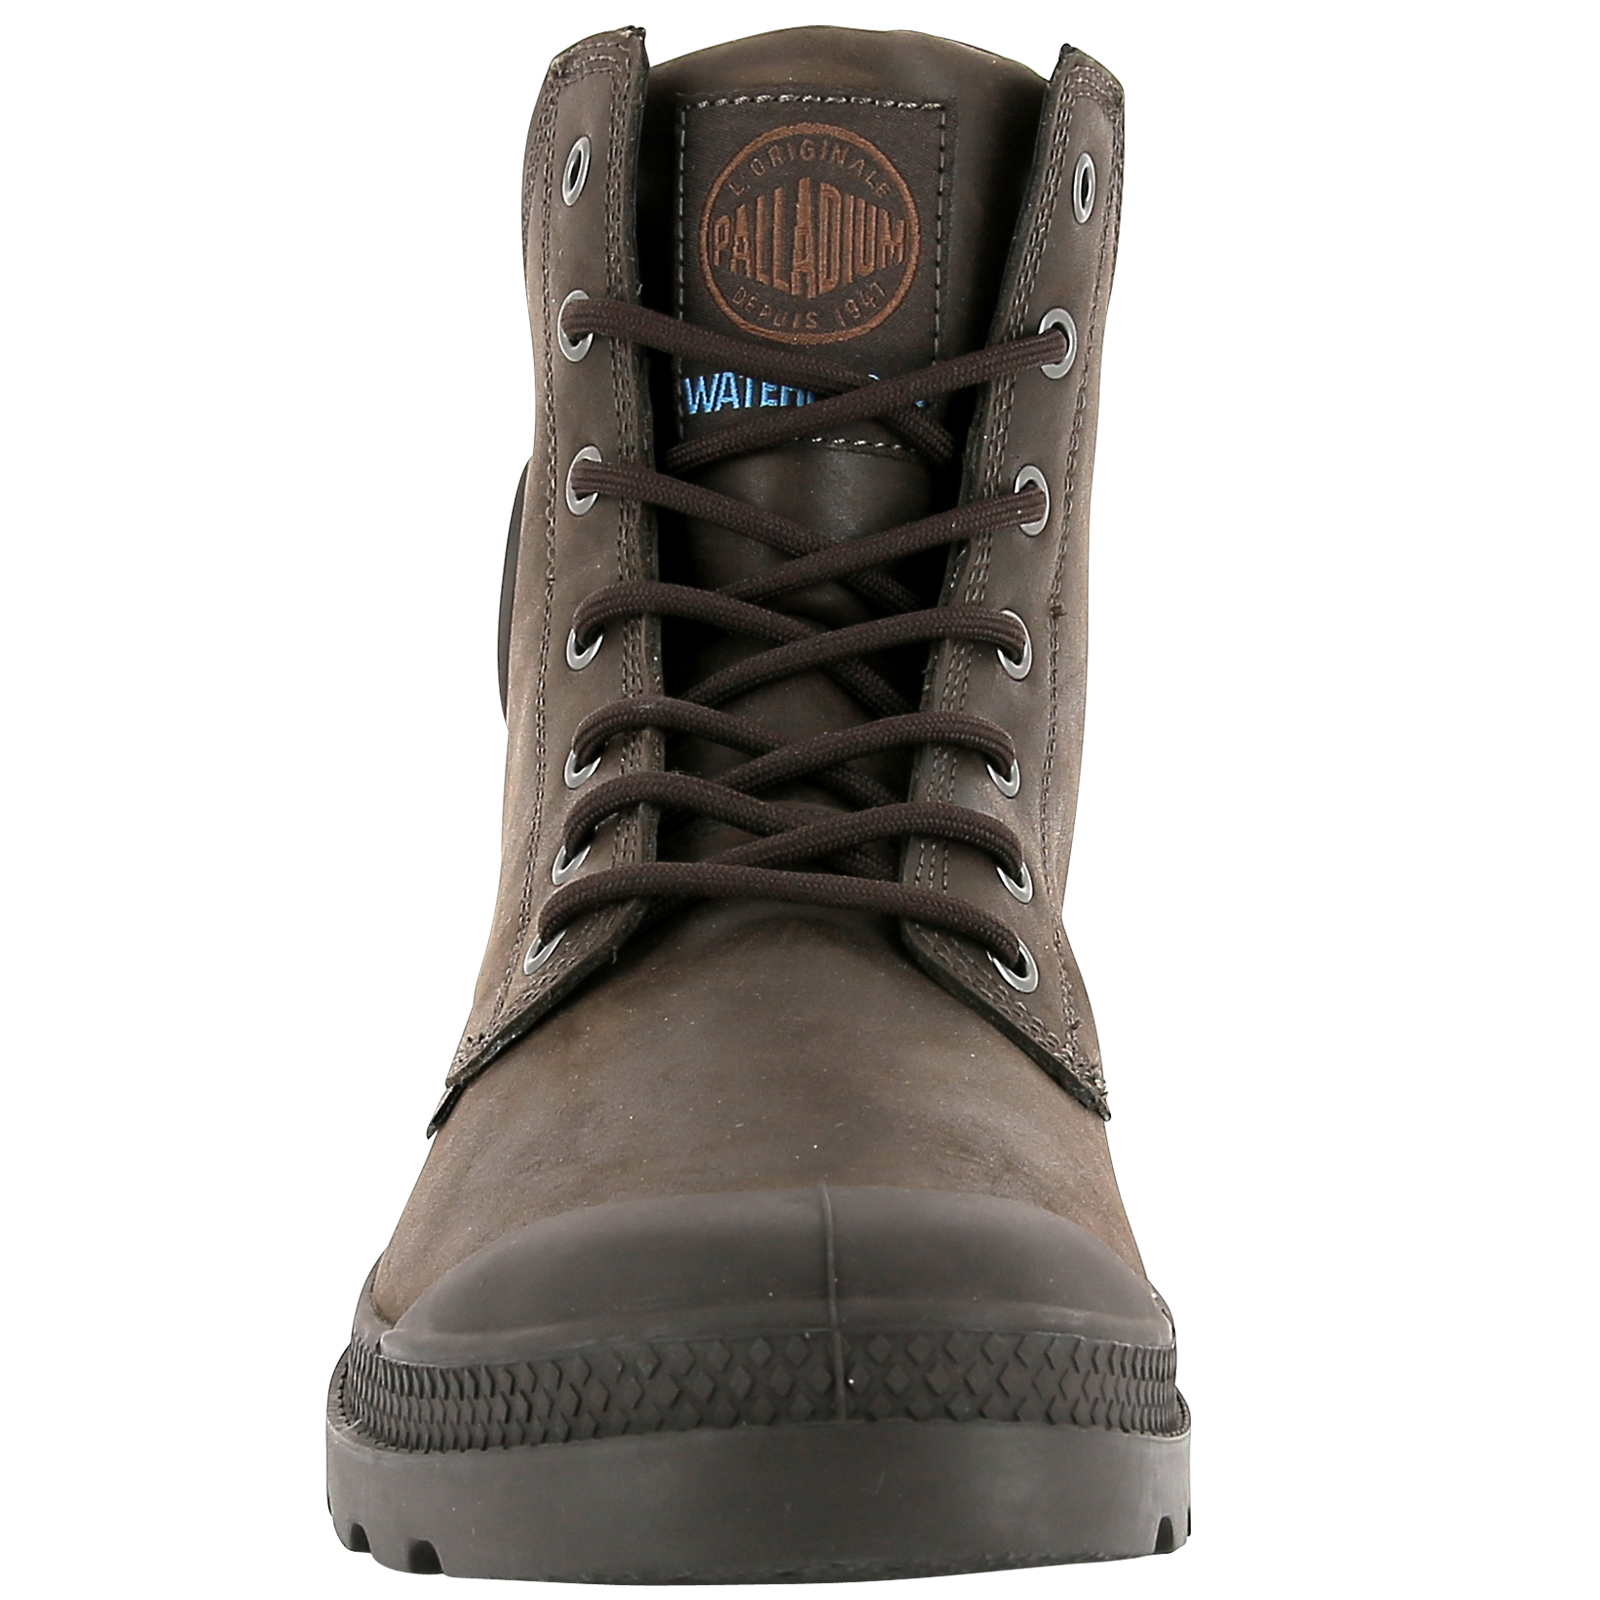 Palladium-Mens-Pampa-Cuff-Lux-Designer-Waterproof-Leather-Walking-Boots-Shoes thumbnail 15